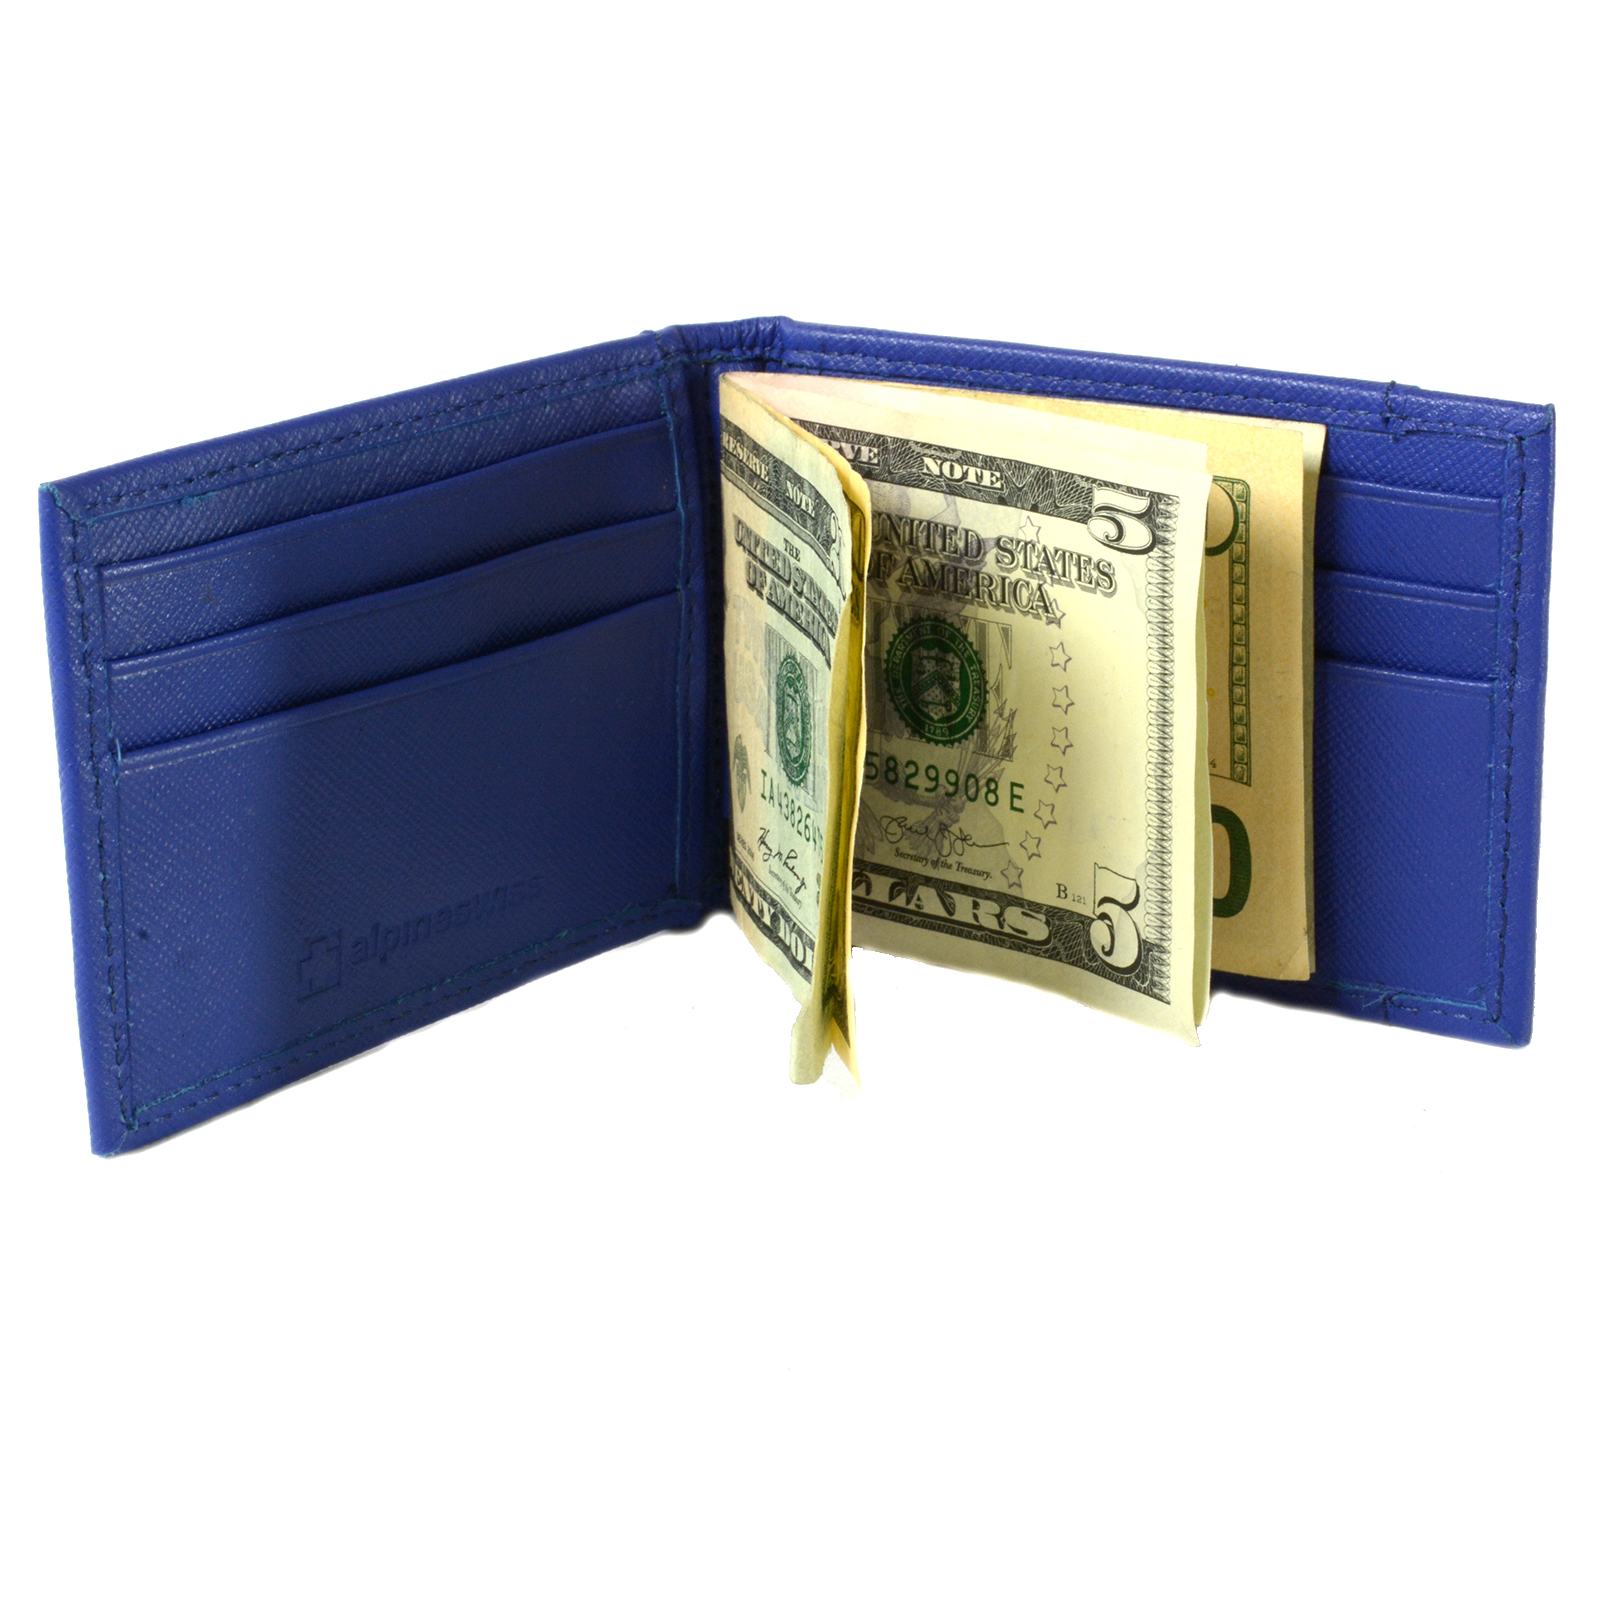 Alpine-Swiss-Mens-Bifold-Money-Clip-Spring-Loaded-Leather-ID-Front-Pocket-Wallet thumbnail 46